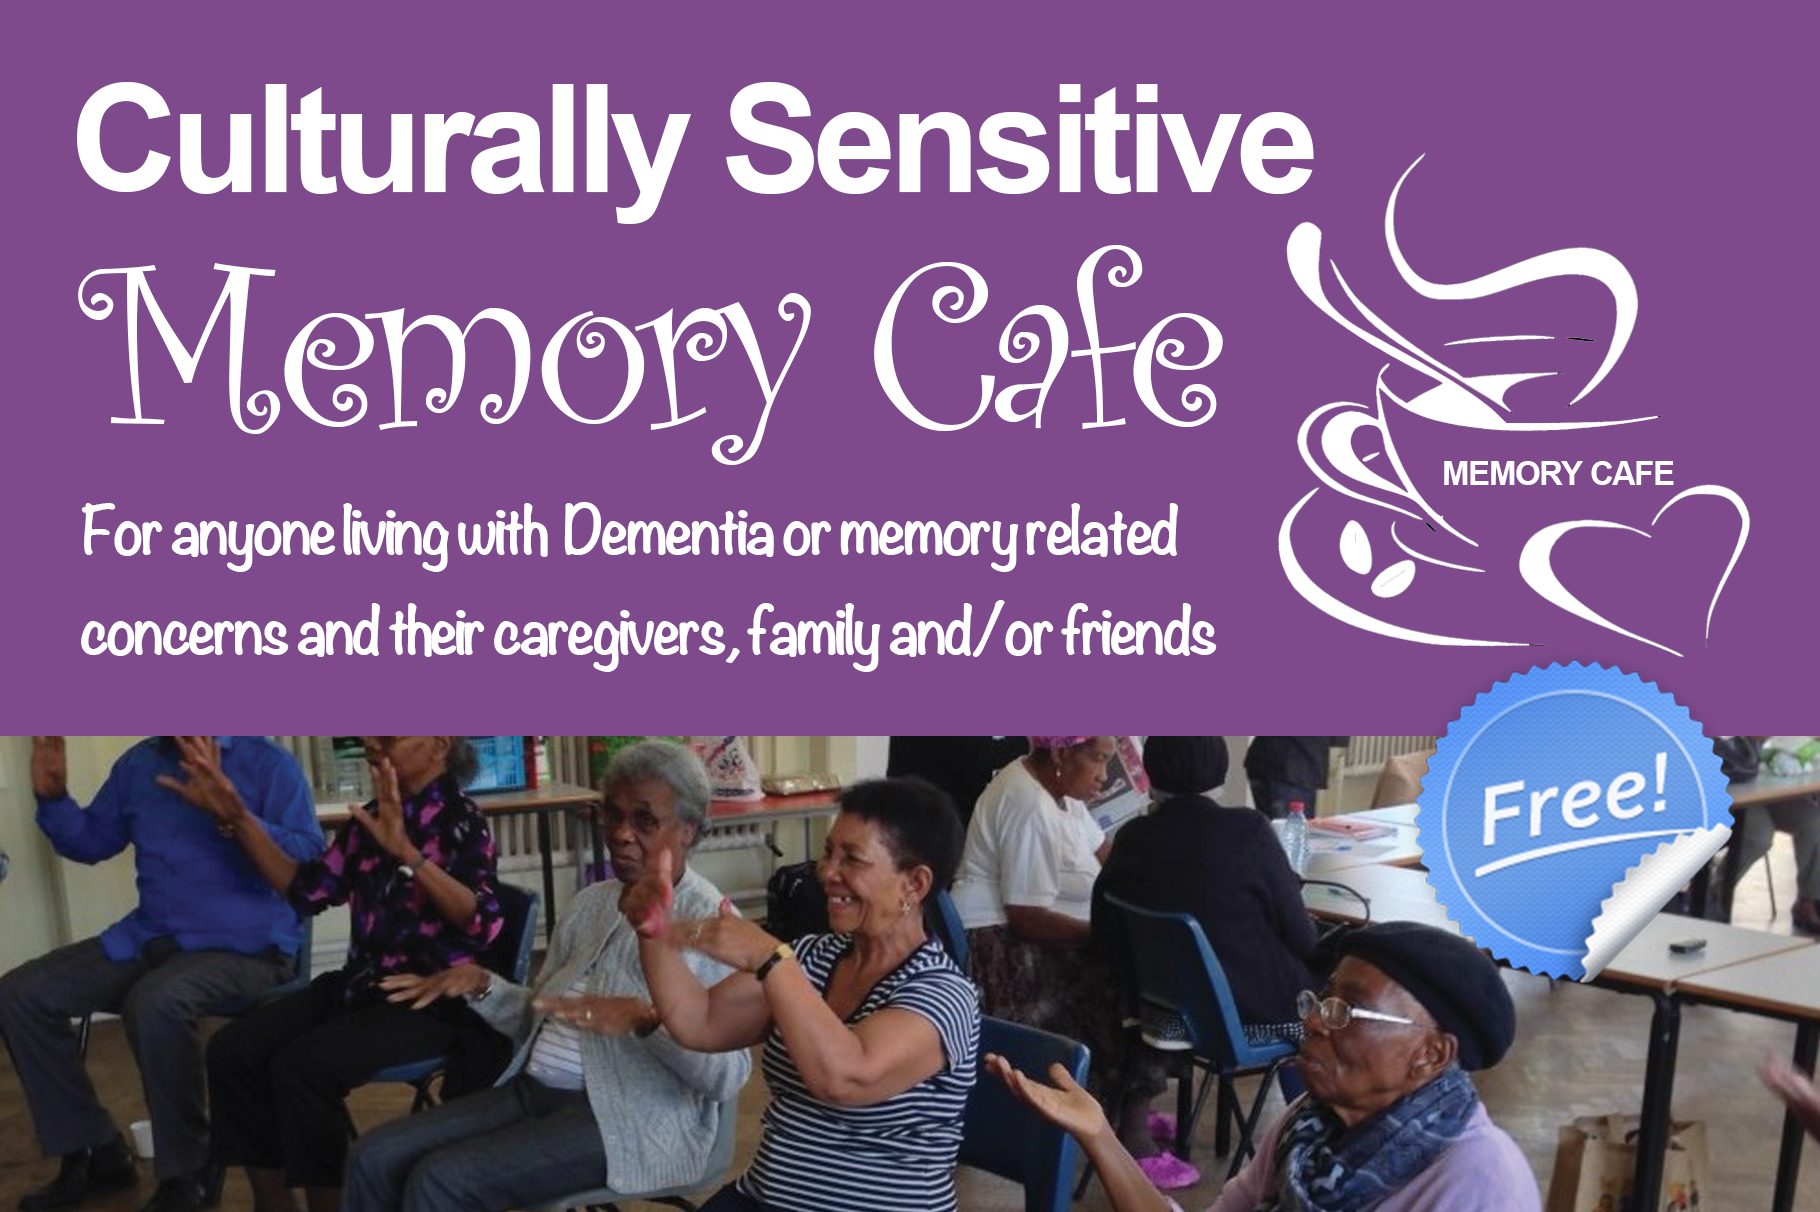 Start a Culturally Sensitive Memory Cafe